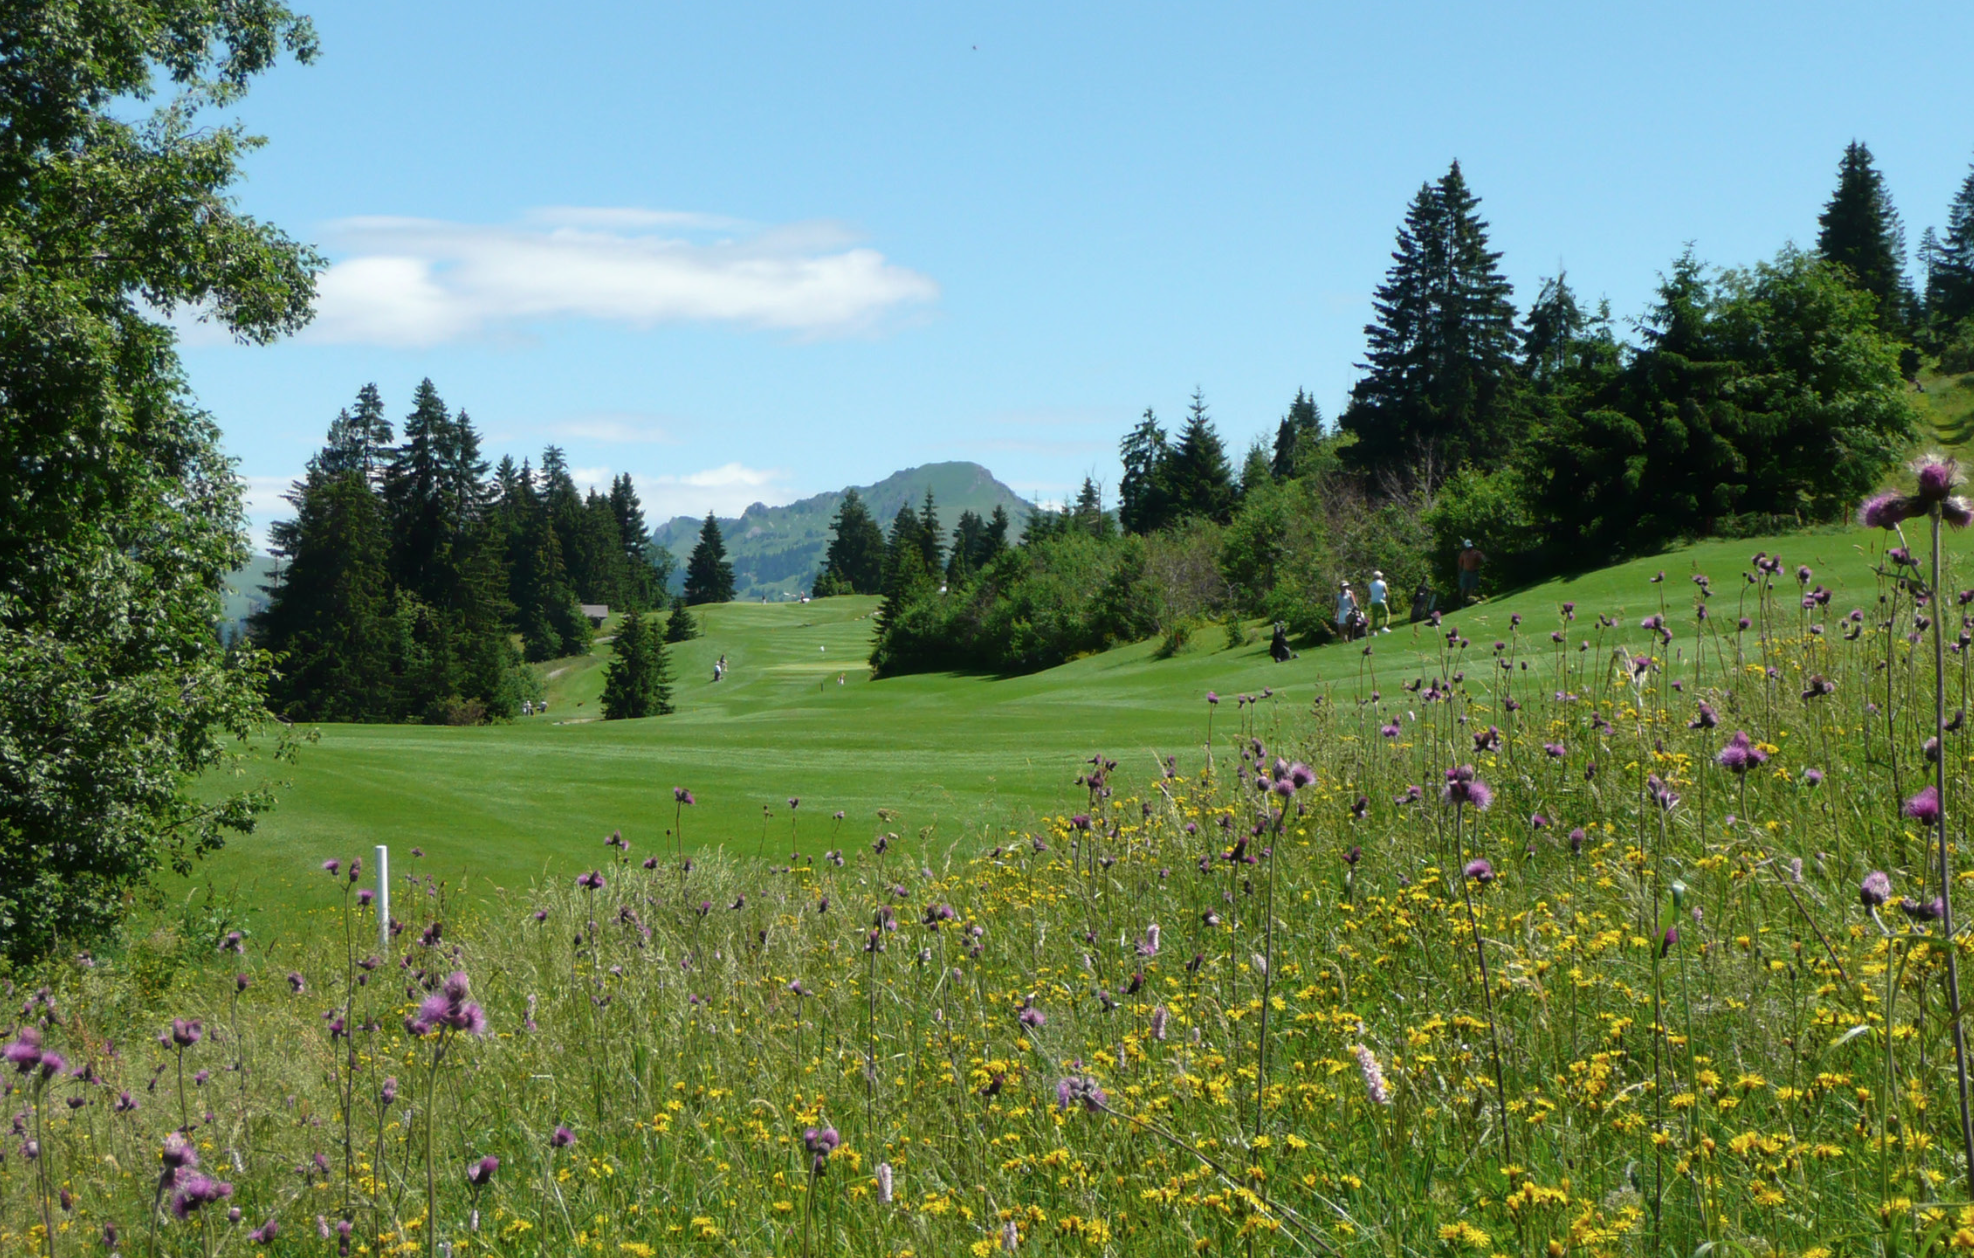 The Hills are Alive: Wildflowers fill the alpine meadows around Gstaad during the summer months